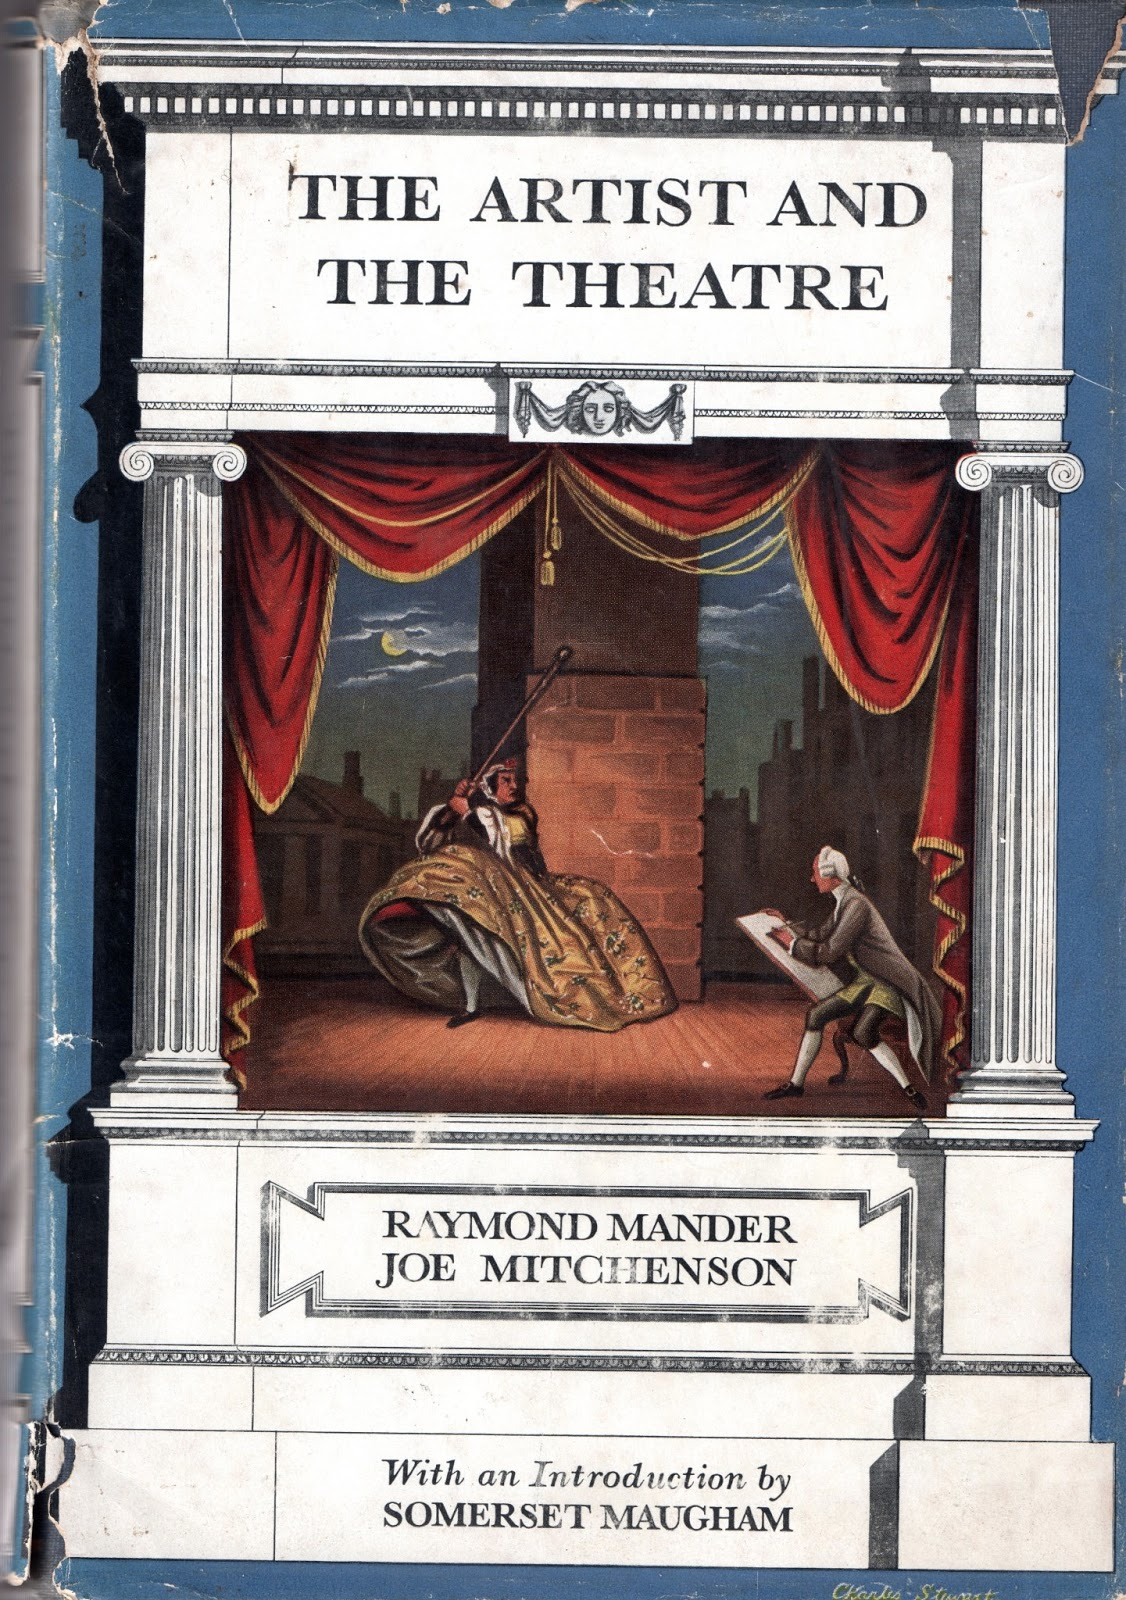 analysis of s maugham theatre Then and now has 399 ratings and 34 reviews  analysis of human frailties and the wit maugham's painting of politics of italy in 1500 is vivid and real for today.